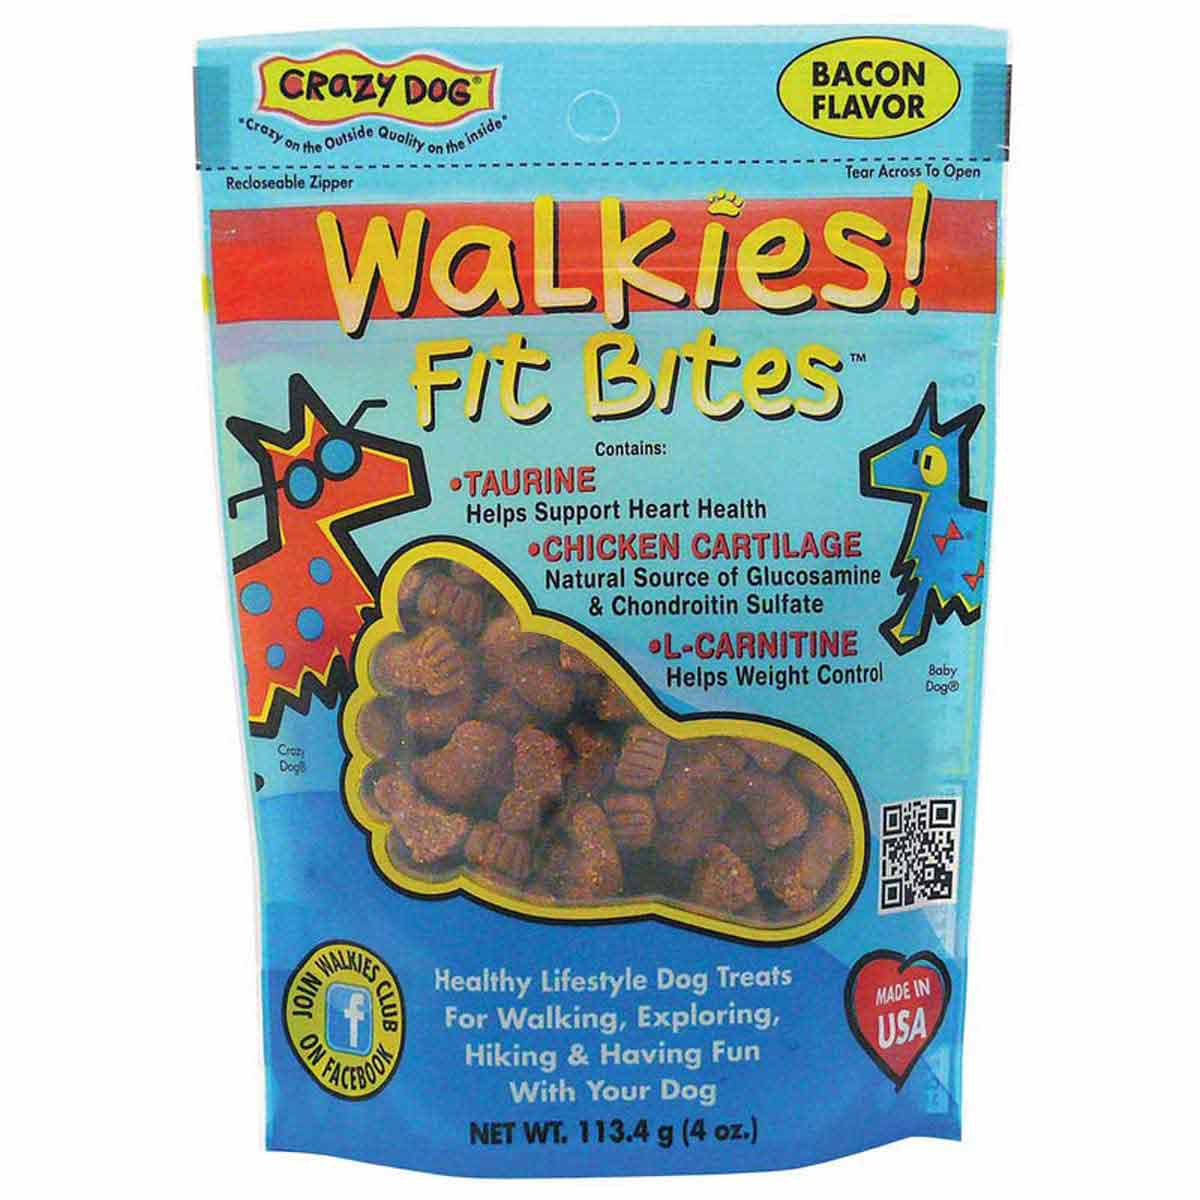 Crazy Dog Walkies! Fit Bites Bacon 4 ounce